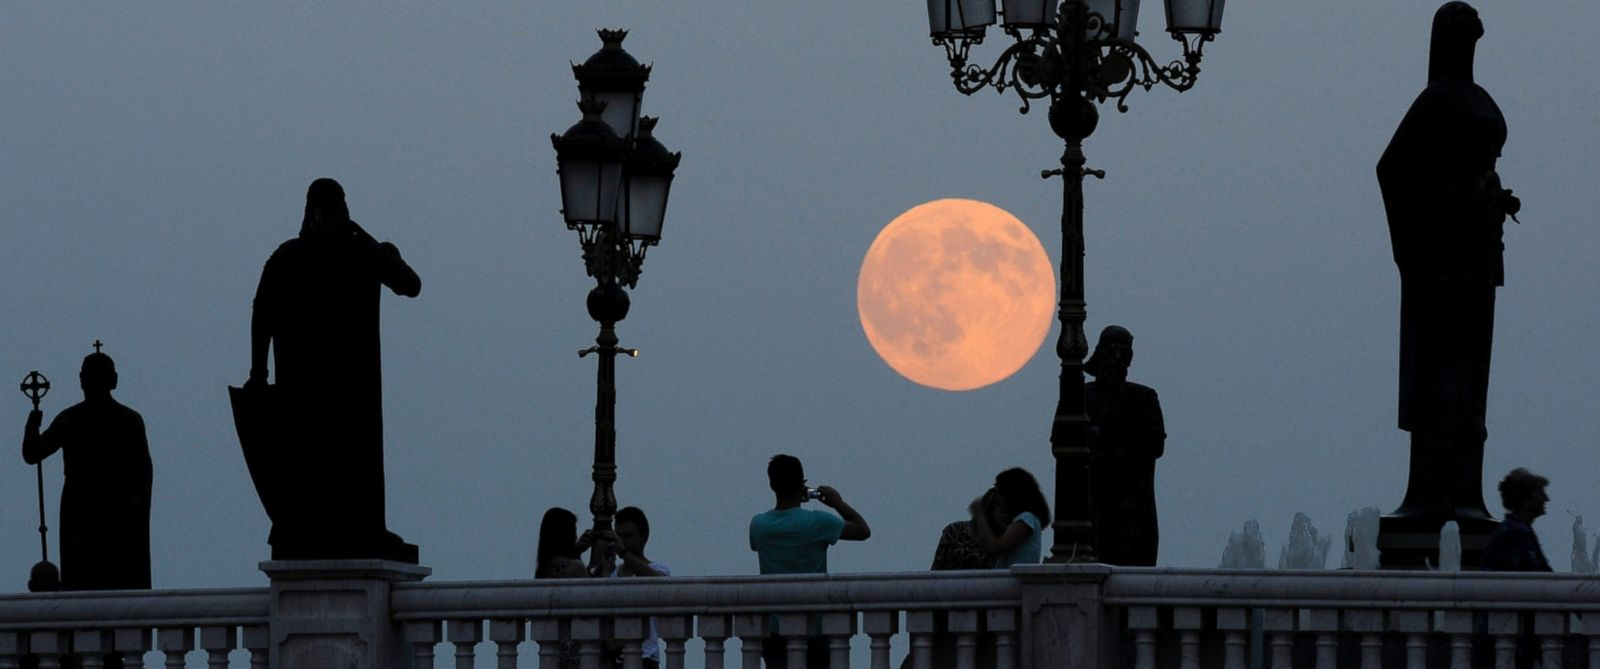 PHOTO: People take photos as a perigee moon also known as a supermoon rises above a bridge over Vardar River in Skopje, Macedonia, Aug. 10, 2014.